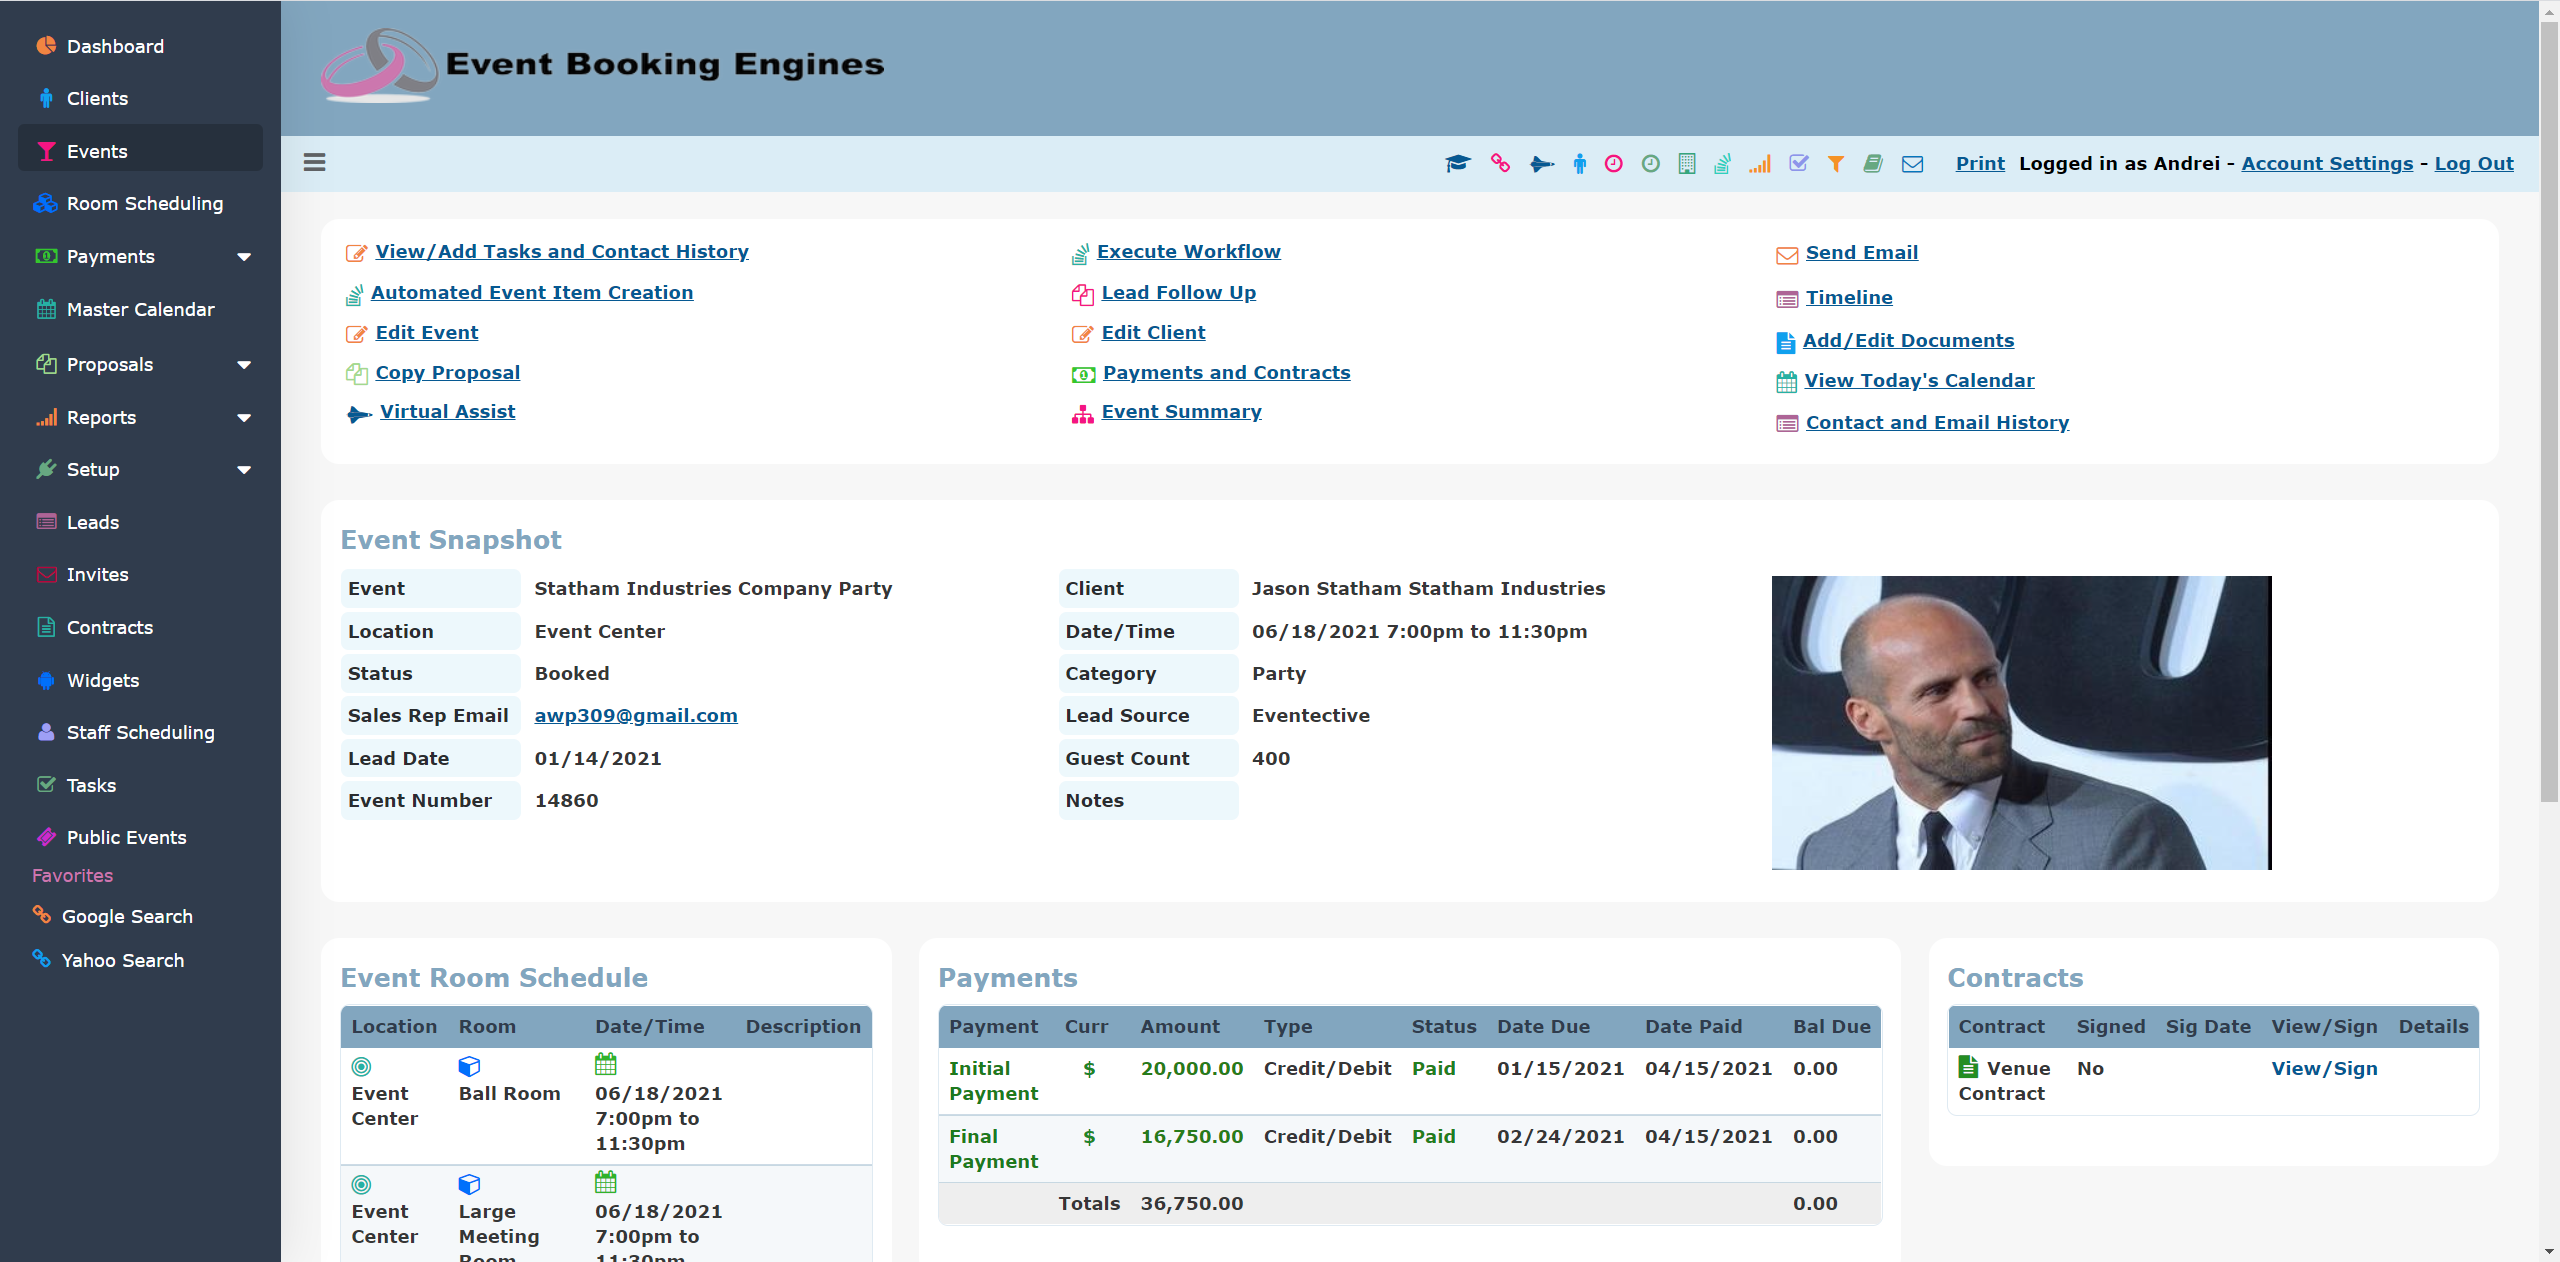 Event Booking Engines Software - Event Snapshot